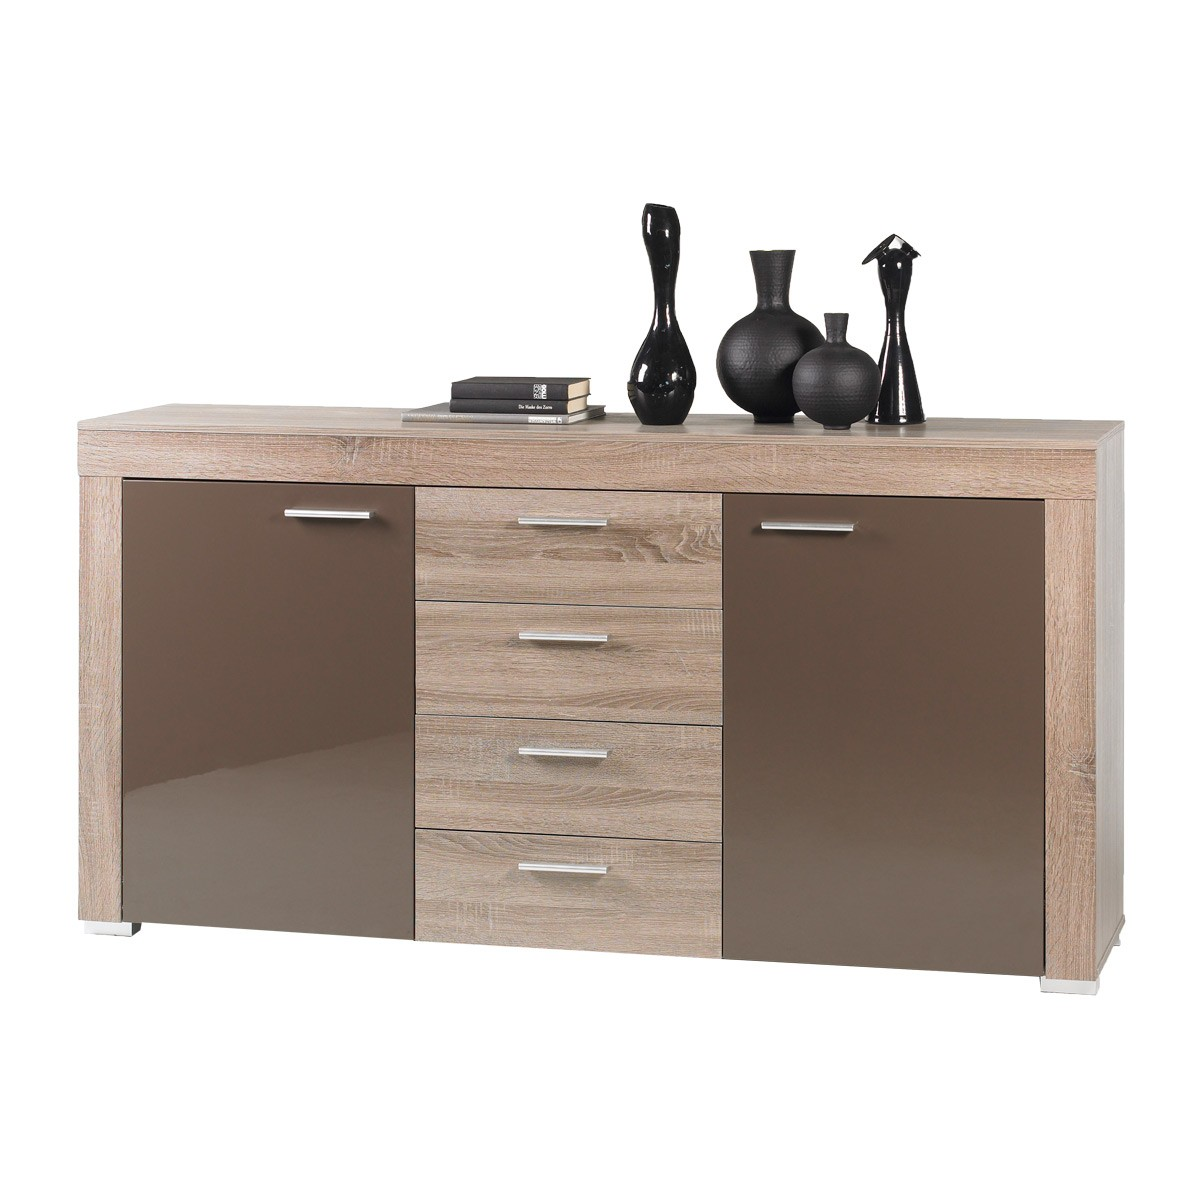 sideboard sonoma eiche s gerau die neuesten innenarchitekturideen. Black Bedroom Furniture Sets. Home Design Ideas